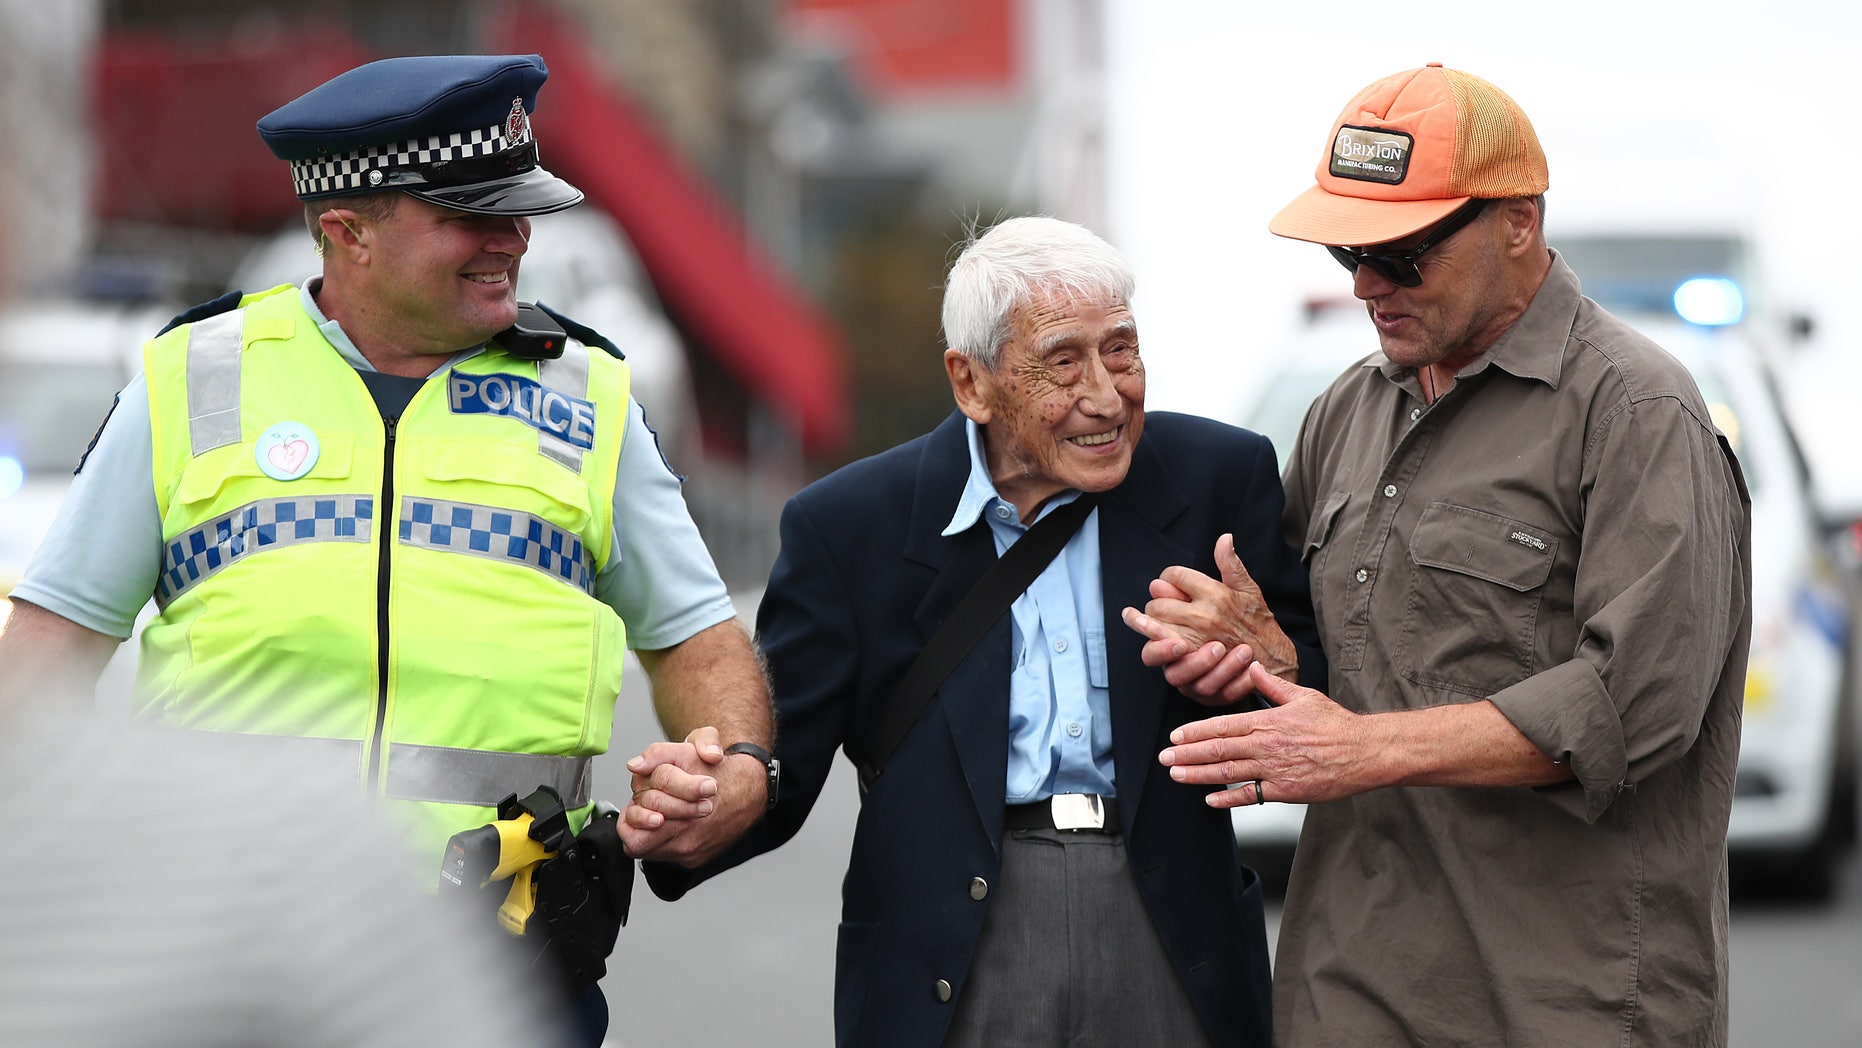 "John Sato, 95, one of only two Japanese soldiers in the New Zealand army in World War II, took two Howick buses to march in March against racism at Aotea Square on March 24, 201<div class=""e3lan e3lan-in-post1""><script async src=""//pagead2.googlesyndication.com/pagead/js/adsbygoogle.js""></script>